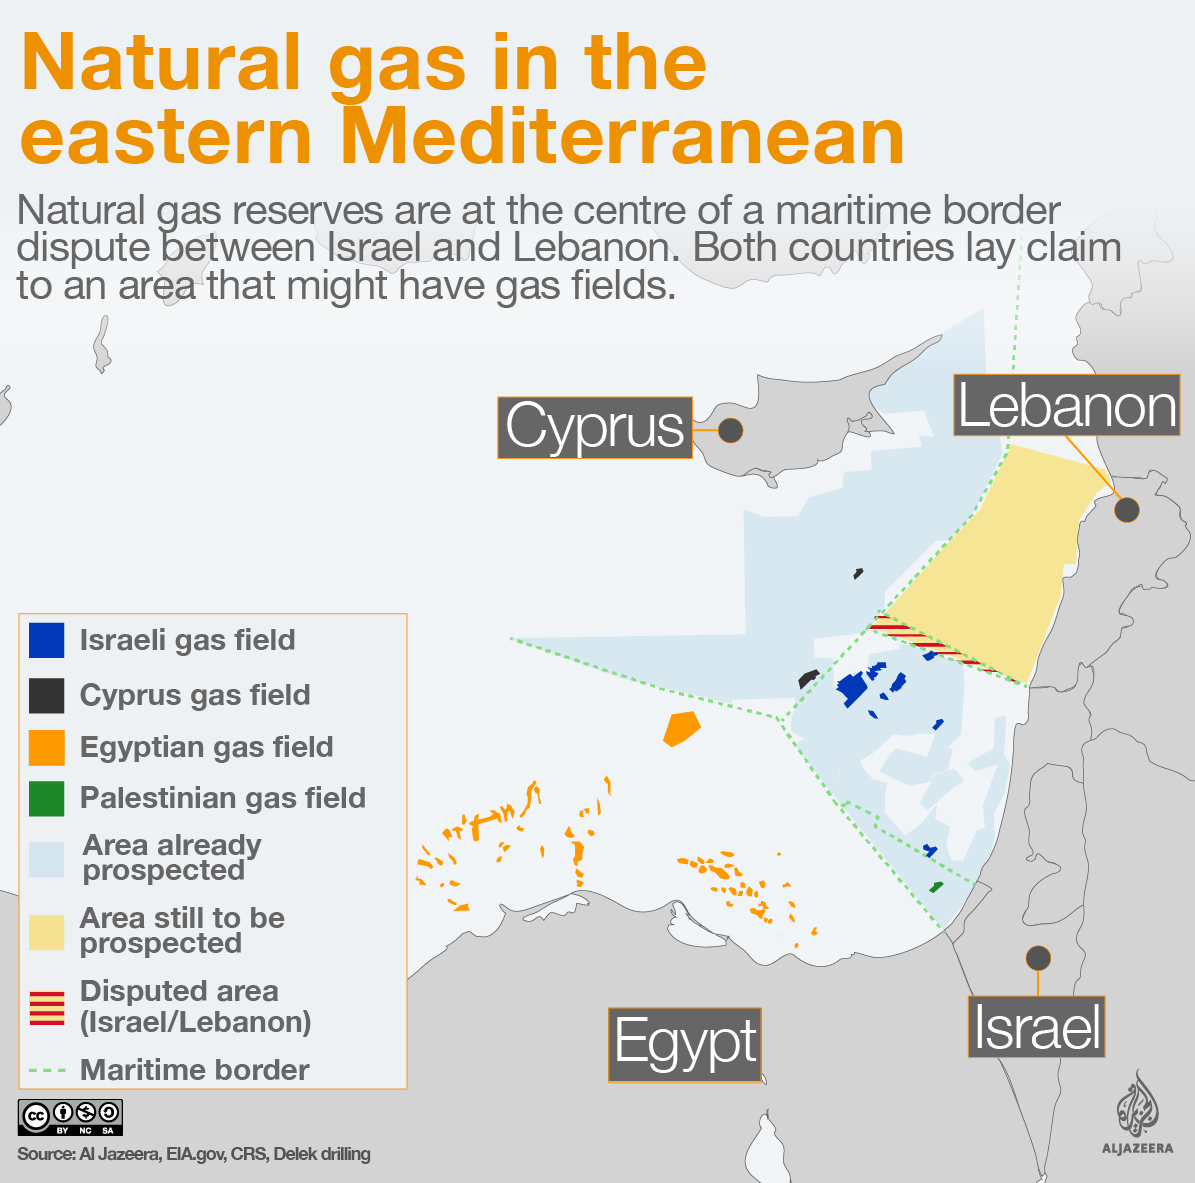 Energy Resources and the New Great Game in the Eastern Mediterranean